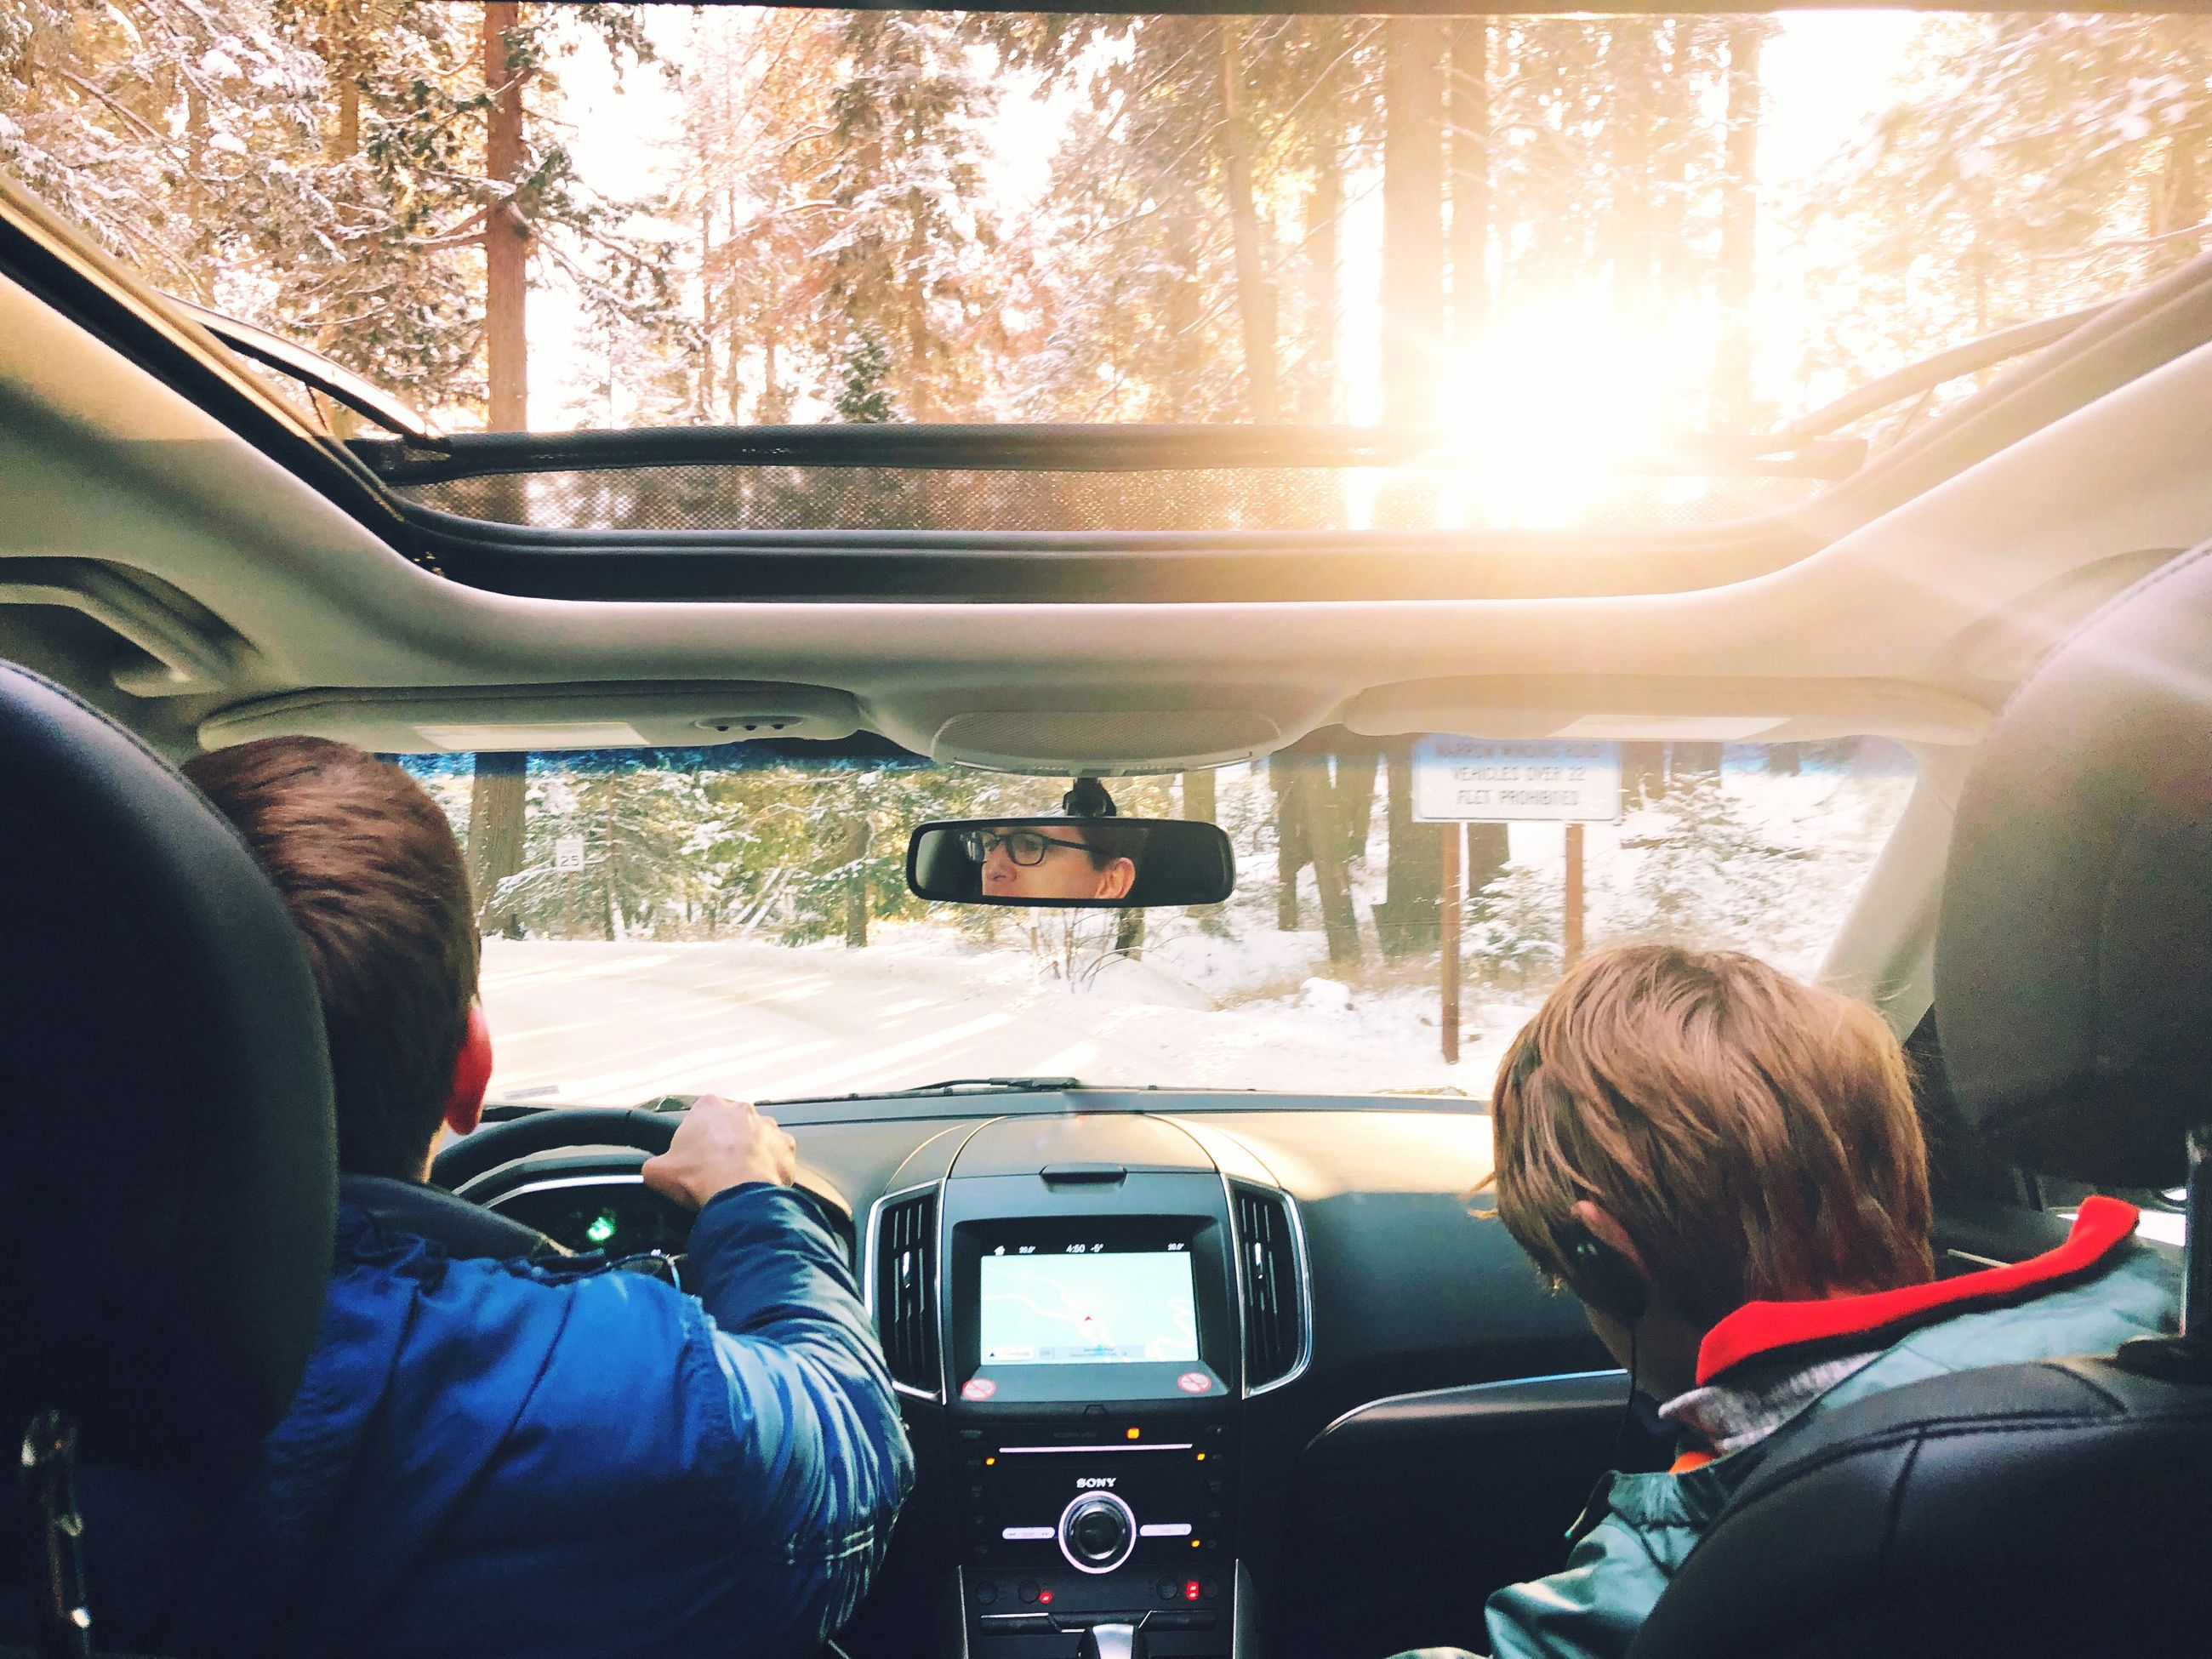 mode of transportation, transportation, vehicle interior, car, land vehicle, rear view, motor vehicle, real people, glass - material, travel, men, windshield, driving, tree, lifestyles, car interior, two people, transparent, day, nature, outdoors, road trip